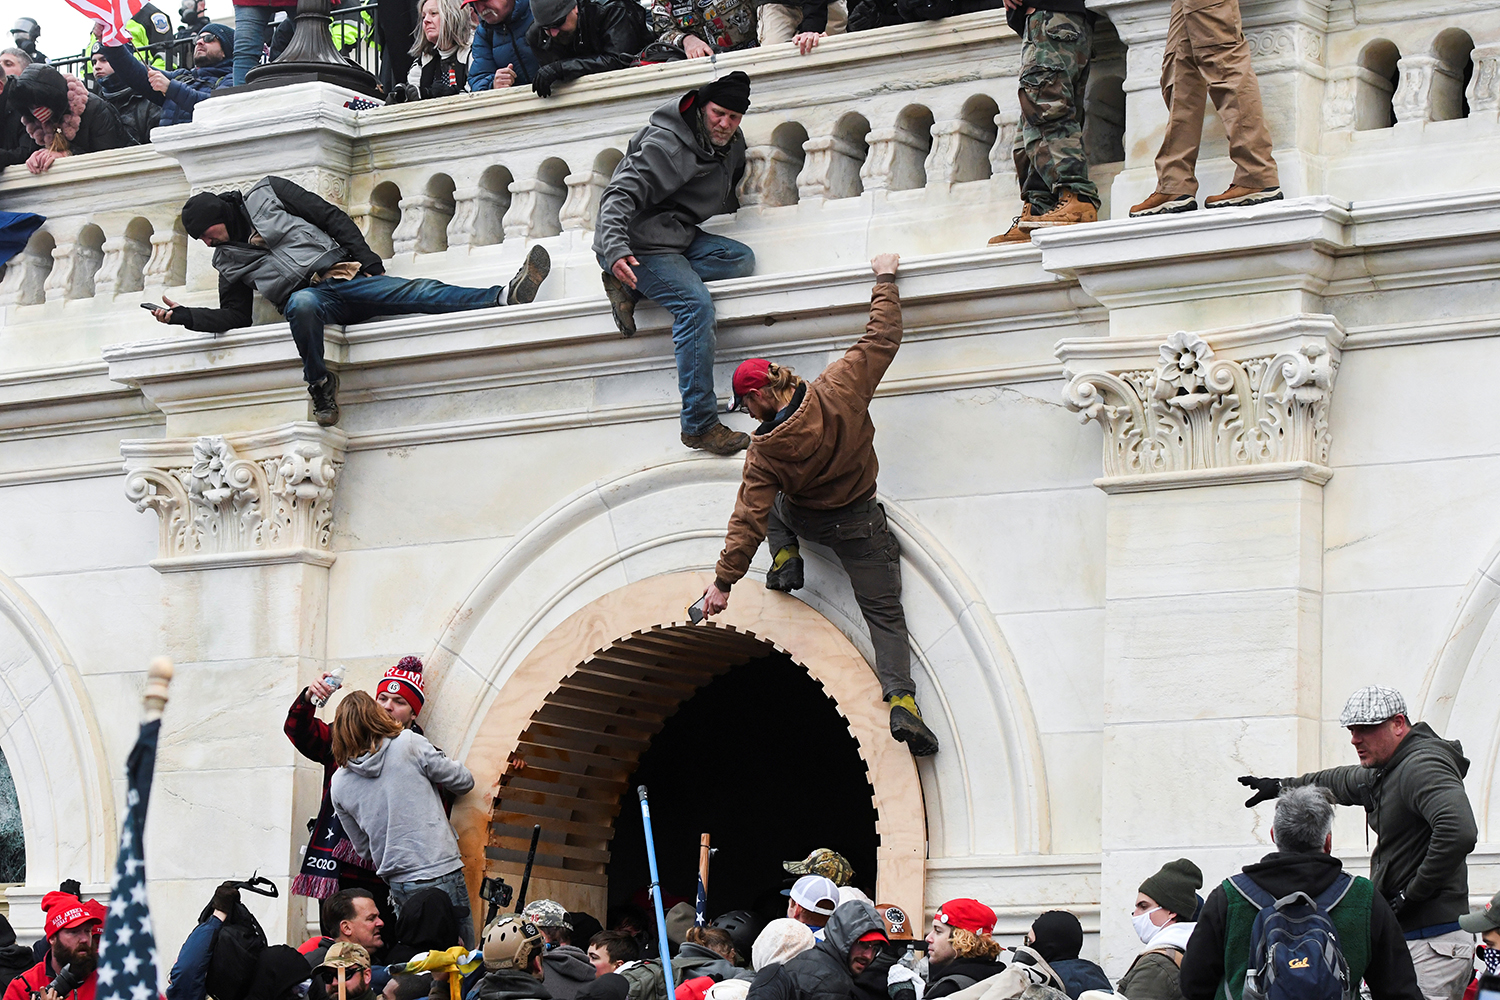 Insurrectionists climb the walls of the U.S. Capitol in Washington during a riot seeking to cancel the certification of the 2020 U.S. presidential election results Jan. 6. Stephanie Keith/Reuters